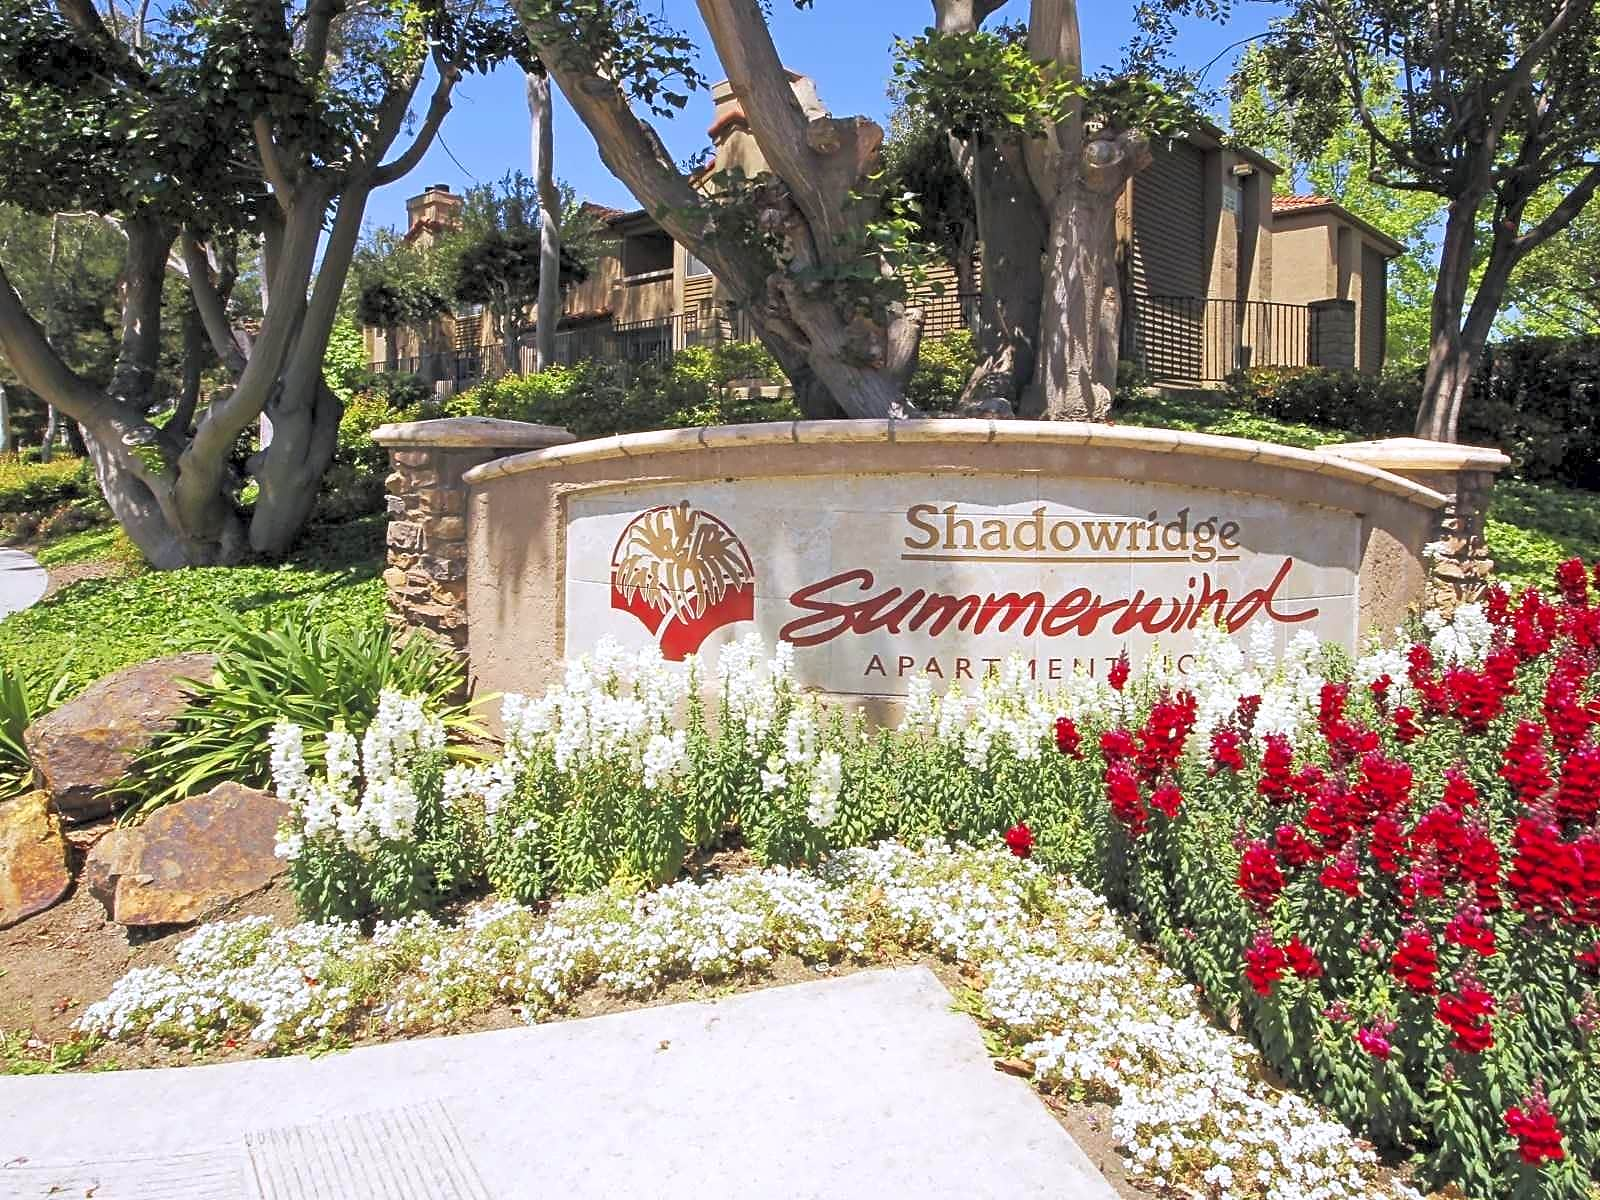 Shadowridge Summerwind for rent in Vista